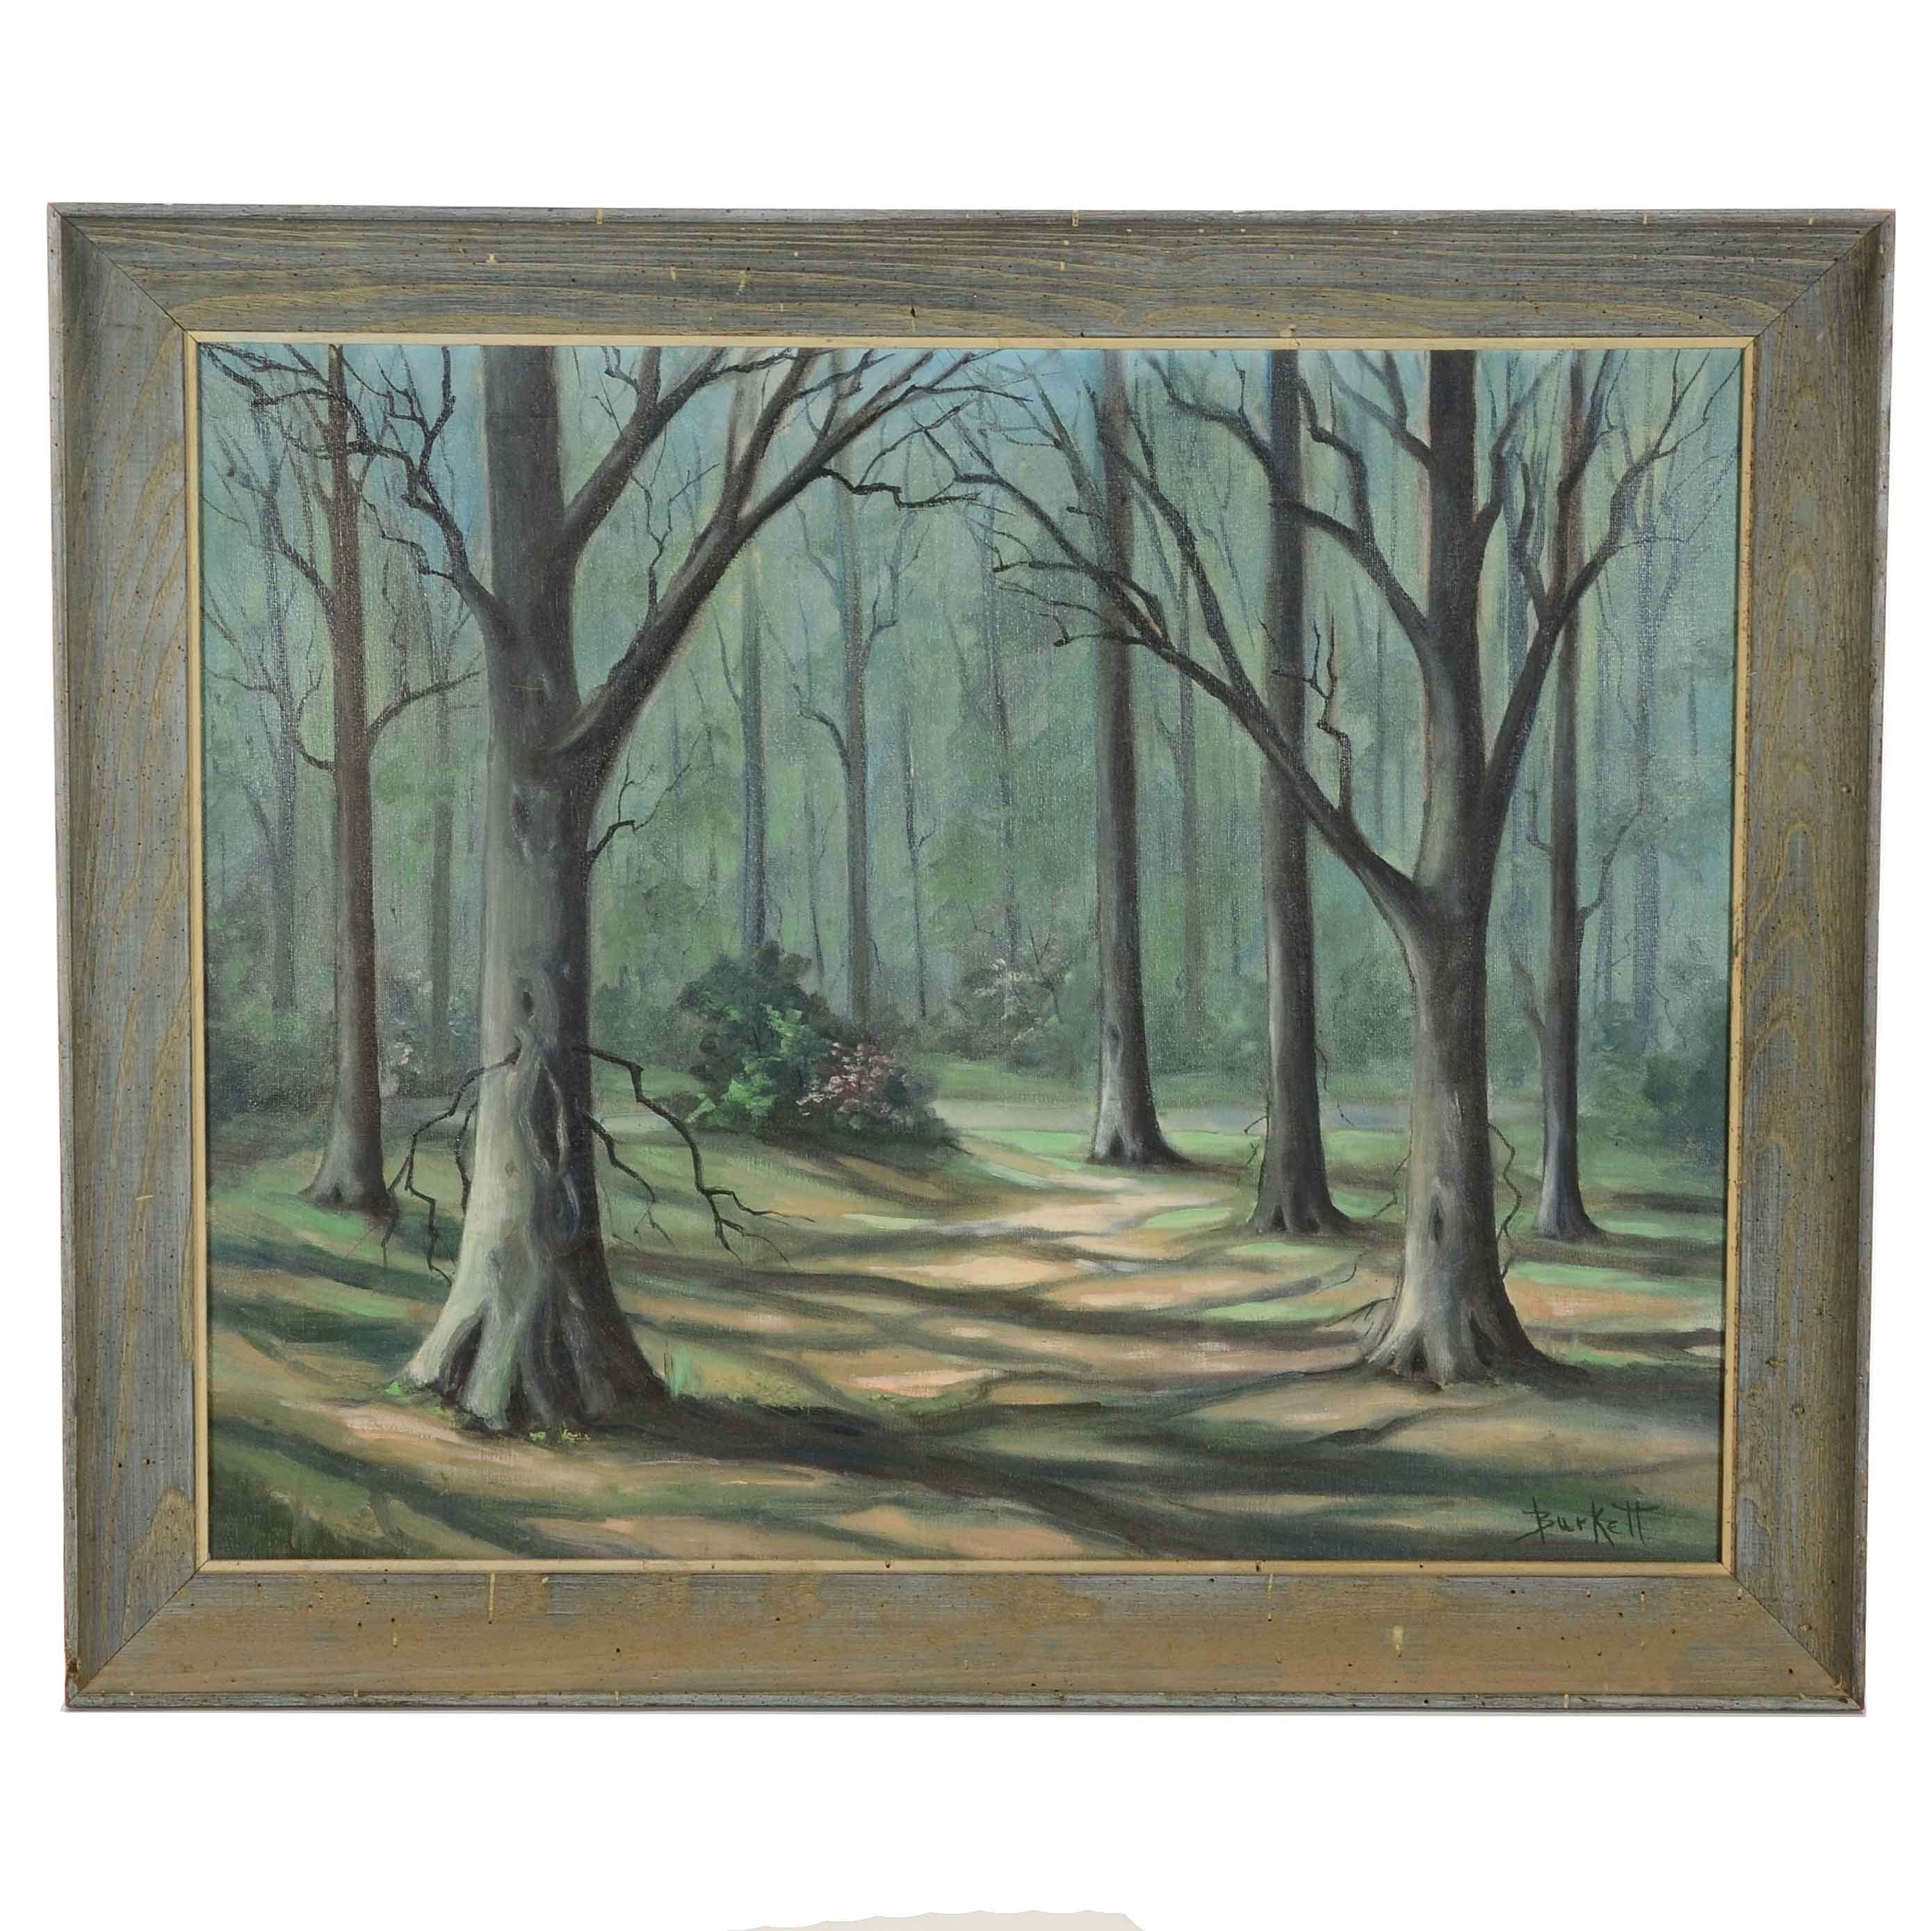 Burkett Signed Original Oil Woodland Landscape Painting on Canvas